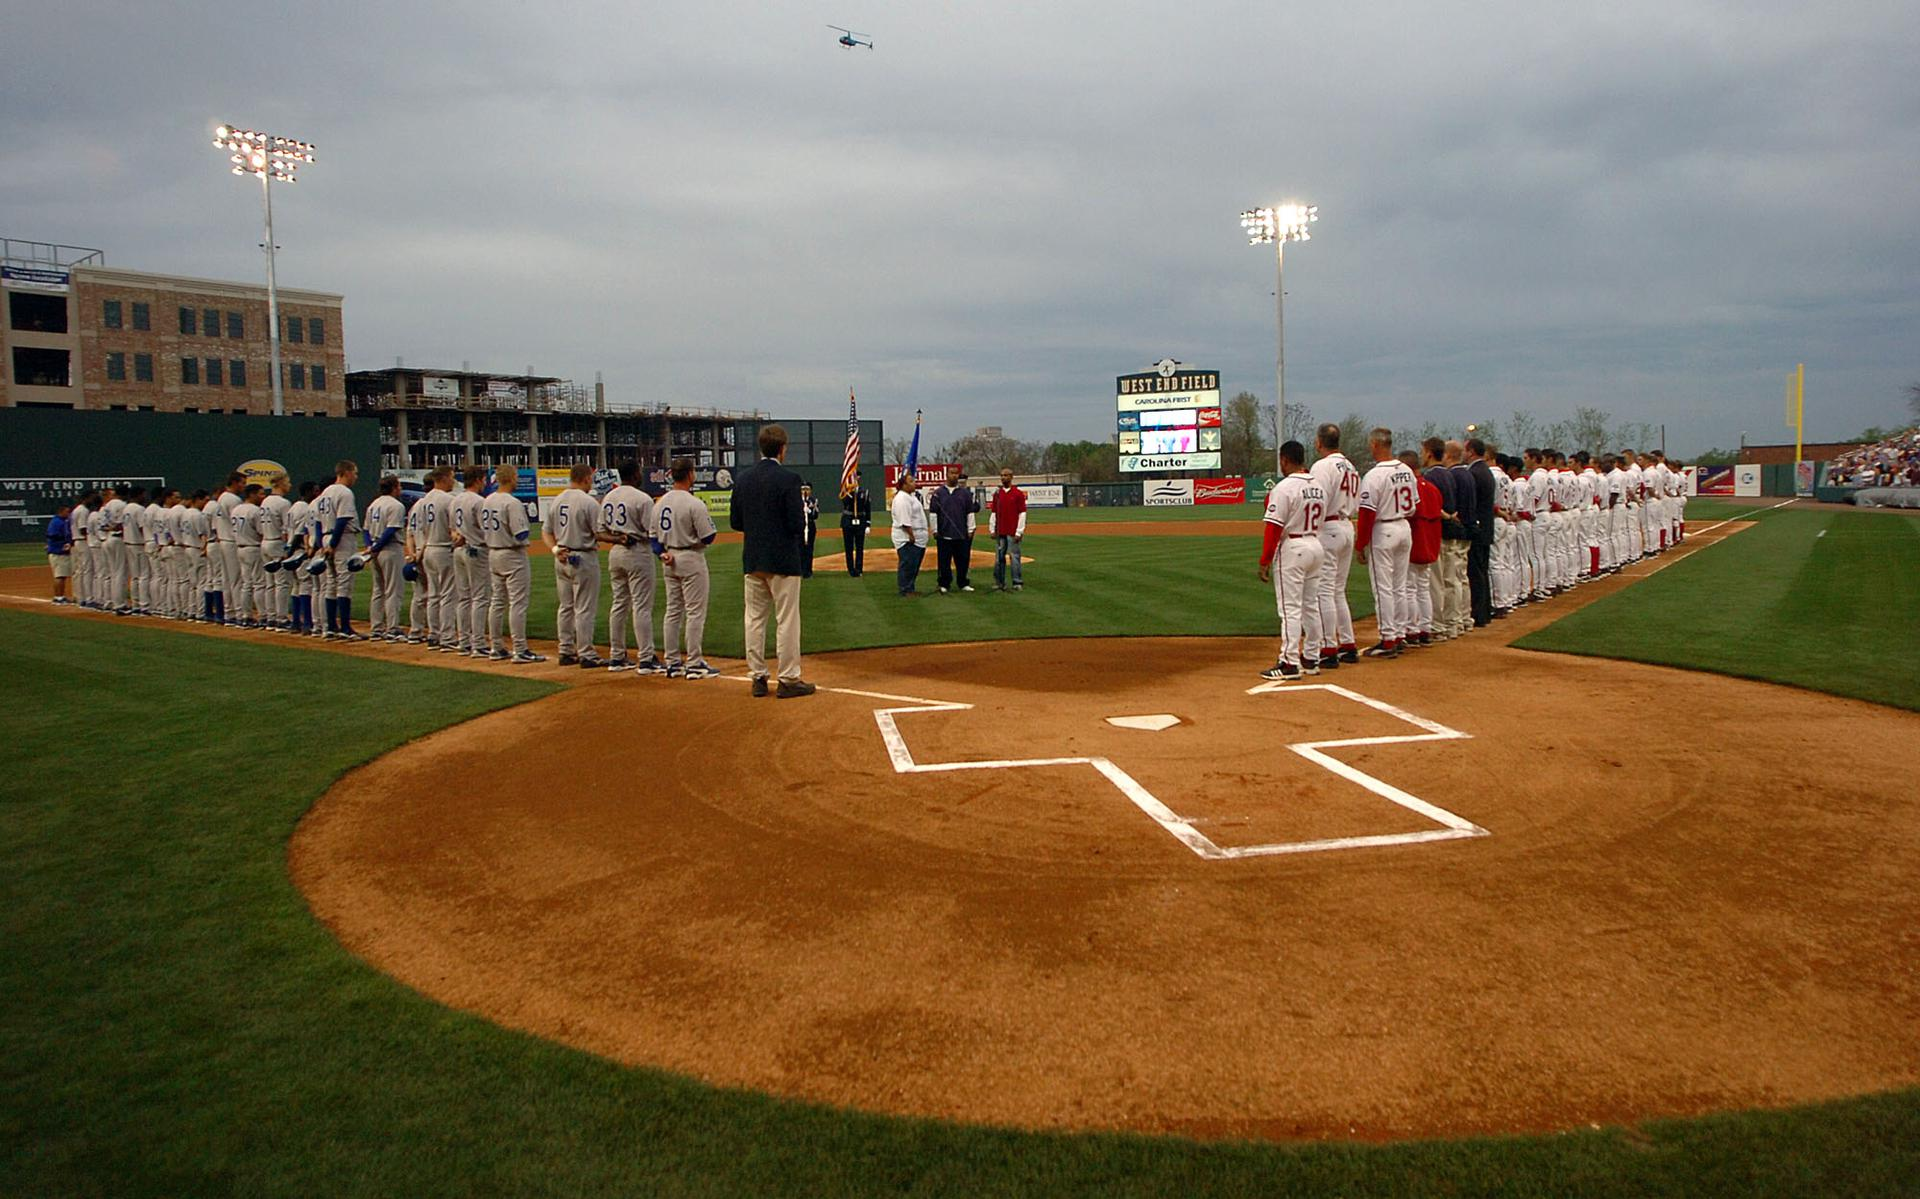 Both teams line the baseball diamond for the national anthem at the 2006 inaugural game